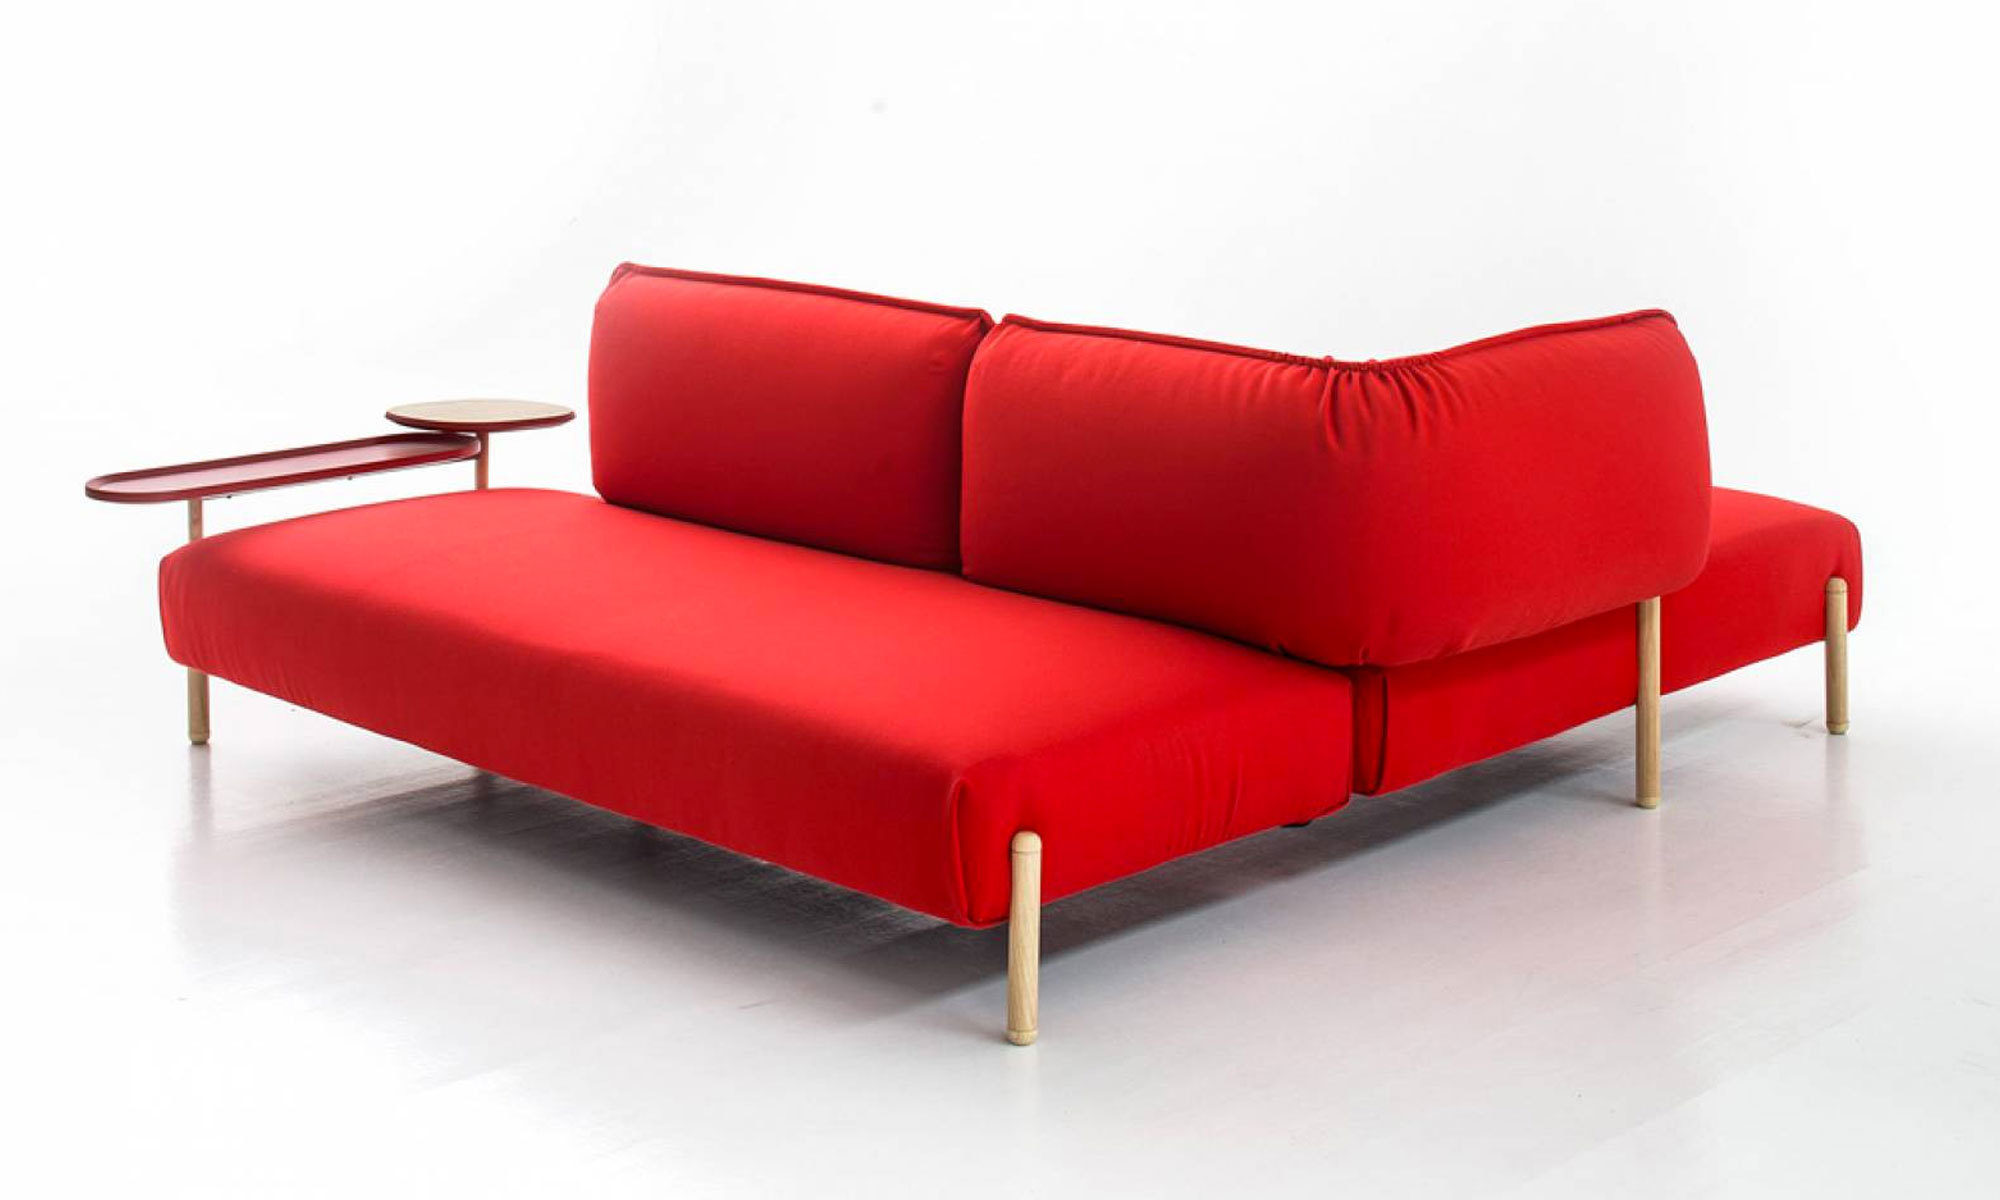 Tender sofa system by patricia urquiola for moroso for Mobilia outlet